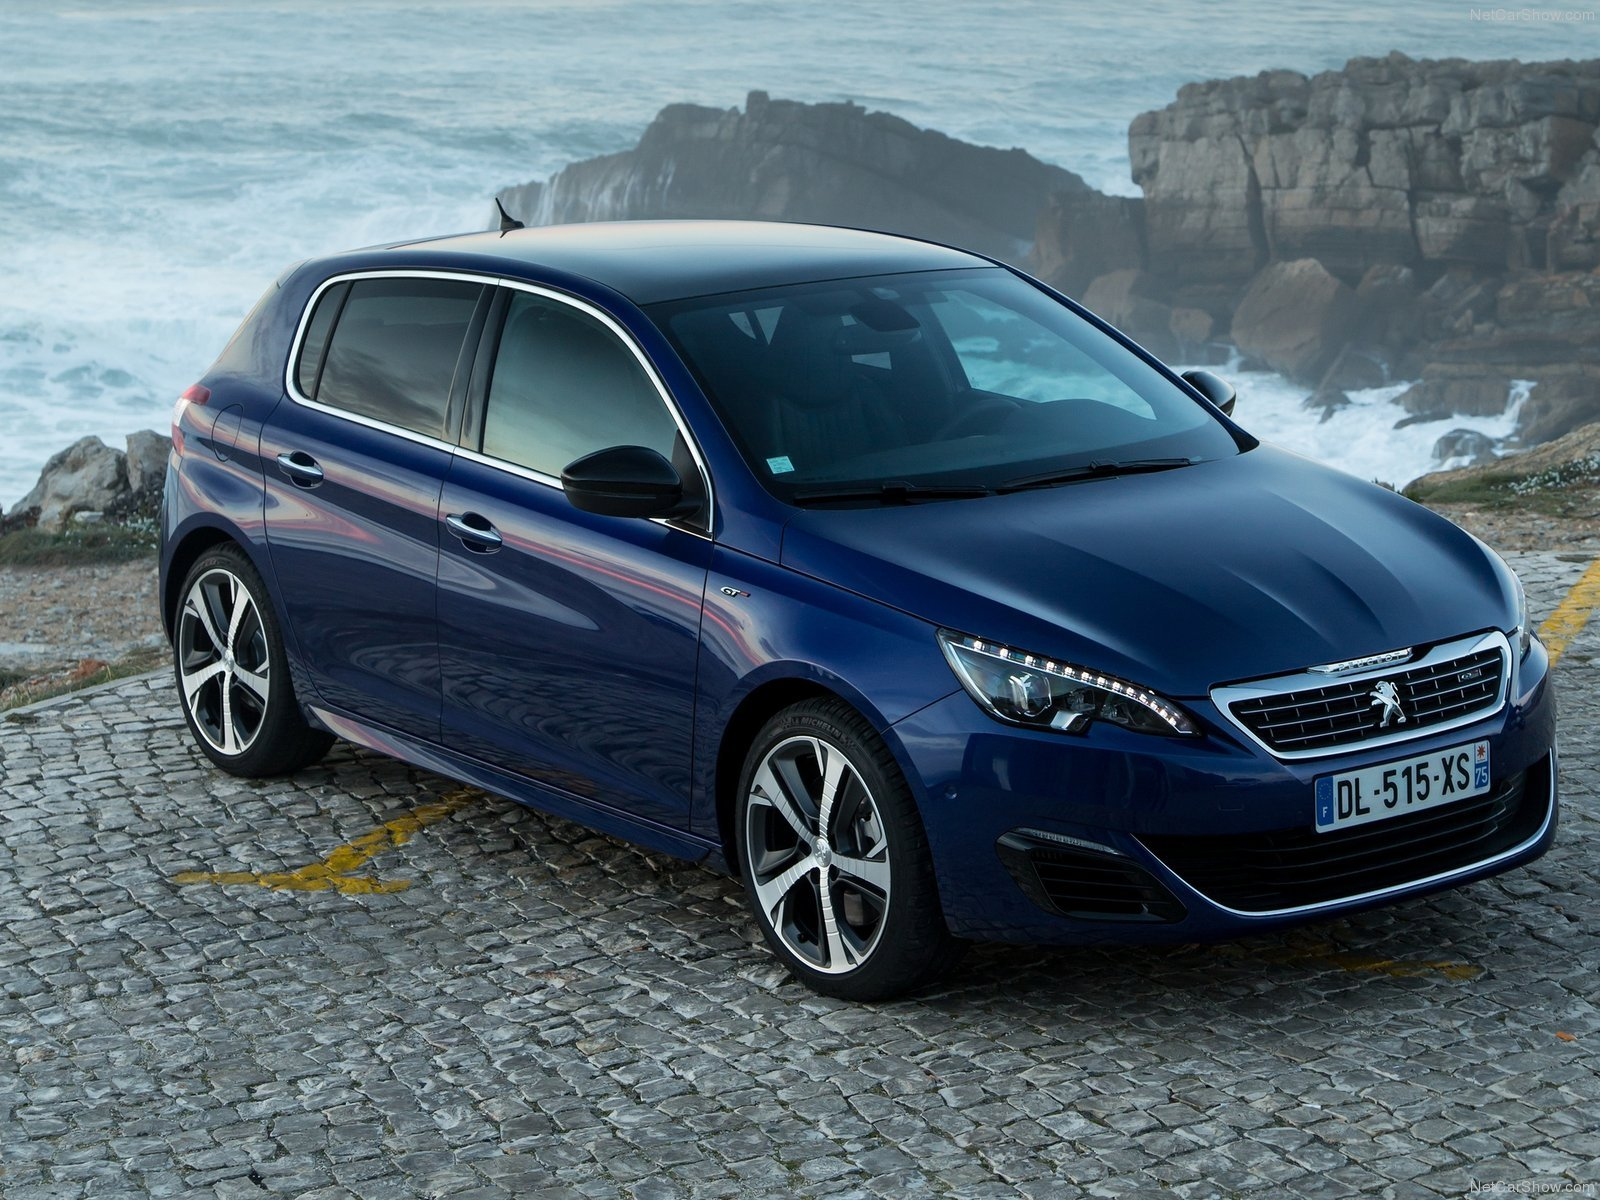 peugeot 308 gt 2015 cars french blue bleu wallpaper 1600x1200 604534 wallpaperup. Black Bedroom Furniture Sets. Home Design Ideas